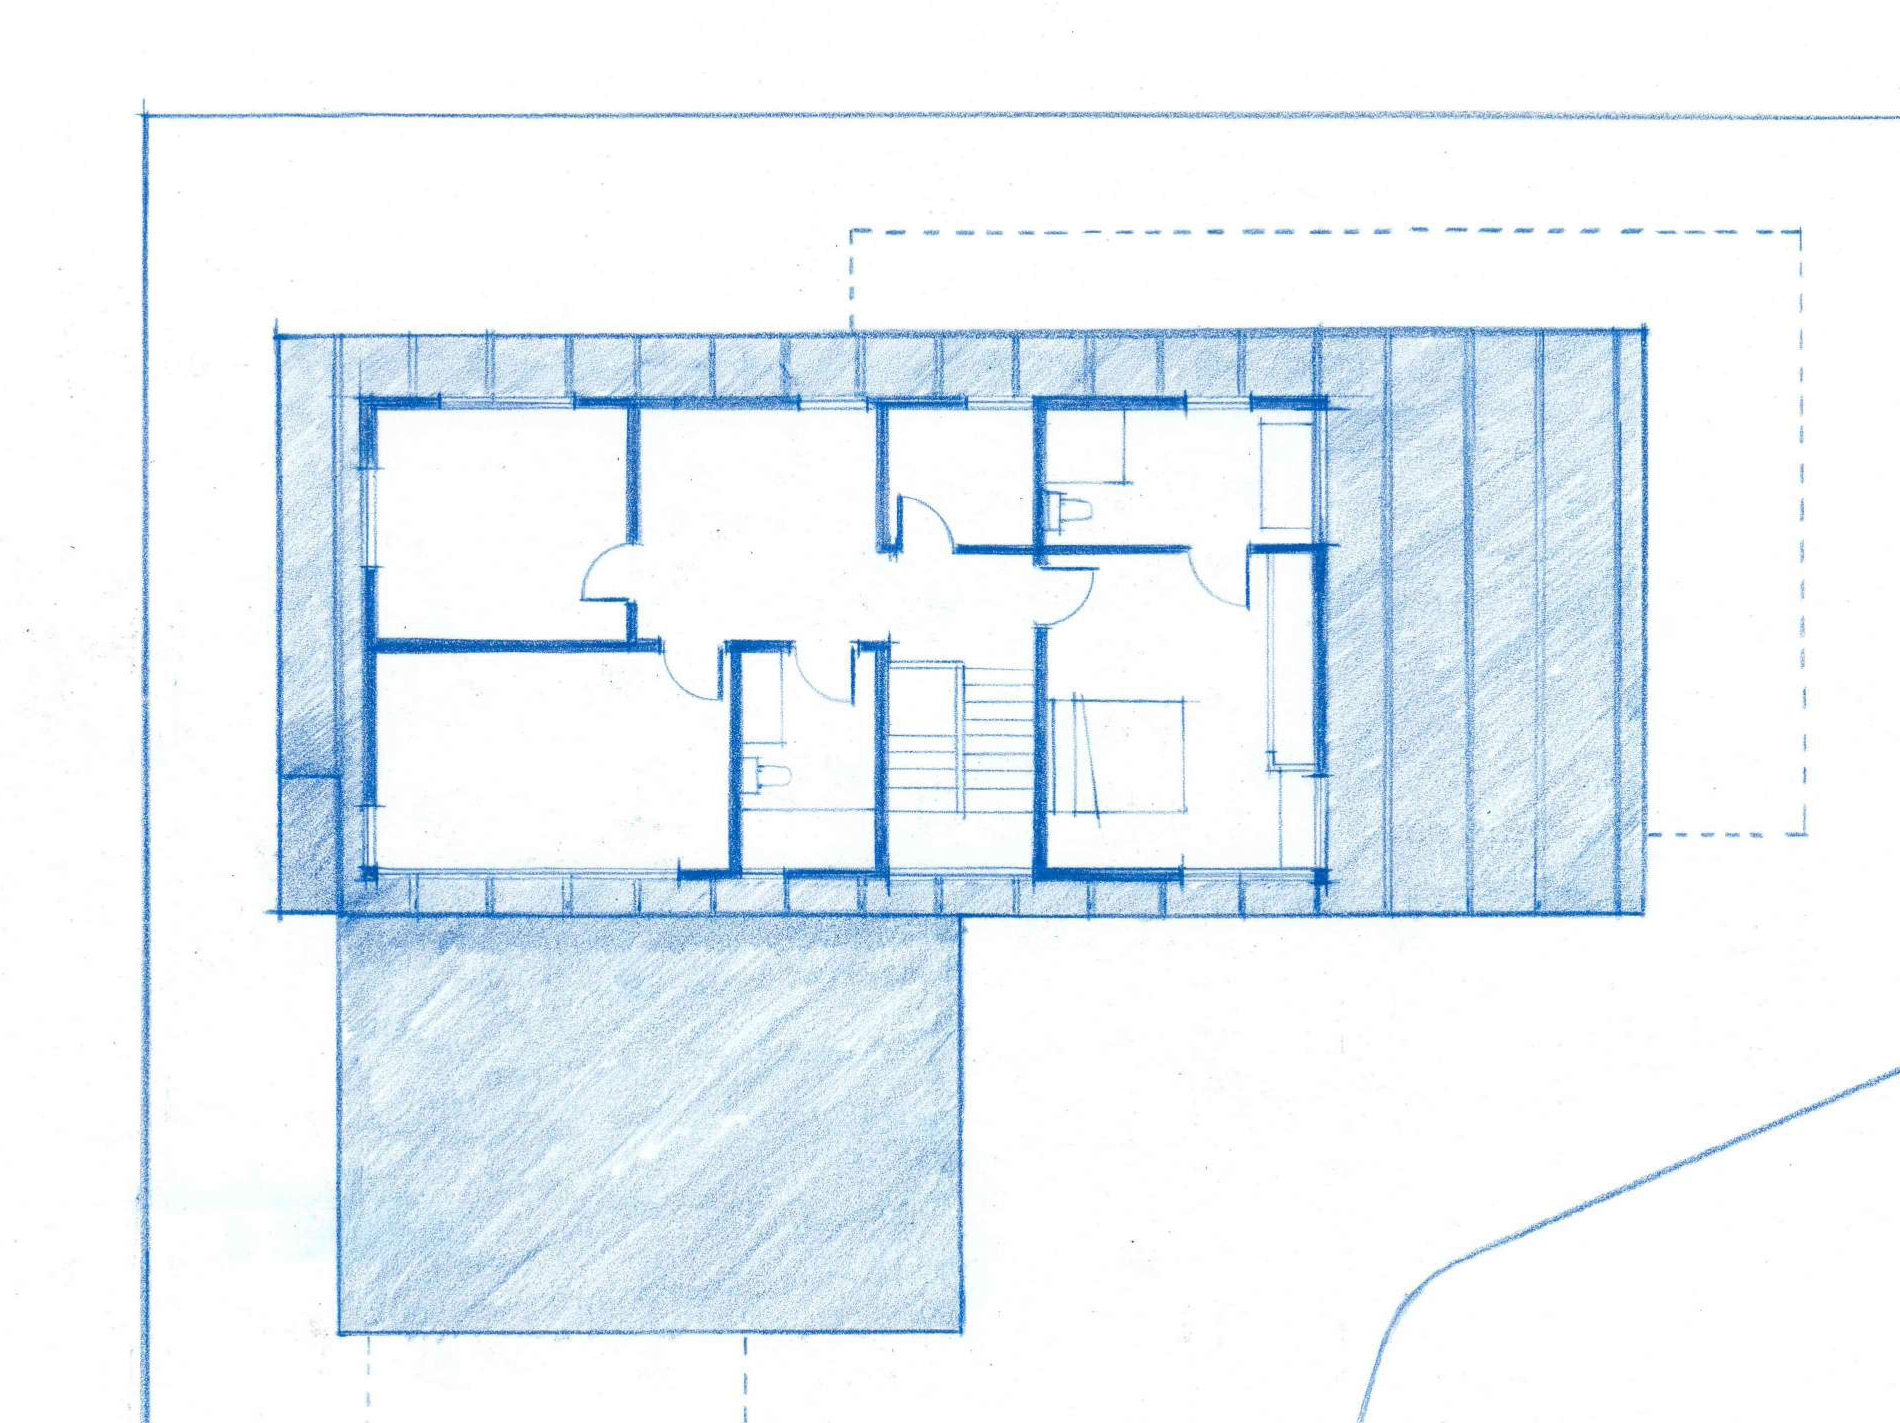 lot Four second floor plan_cropped.png